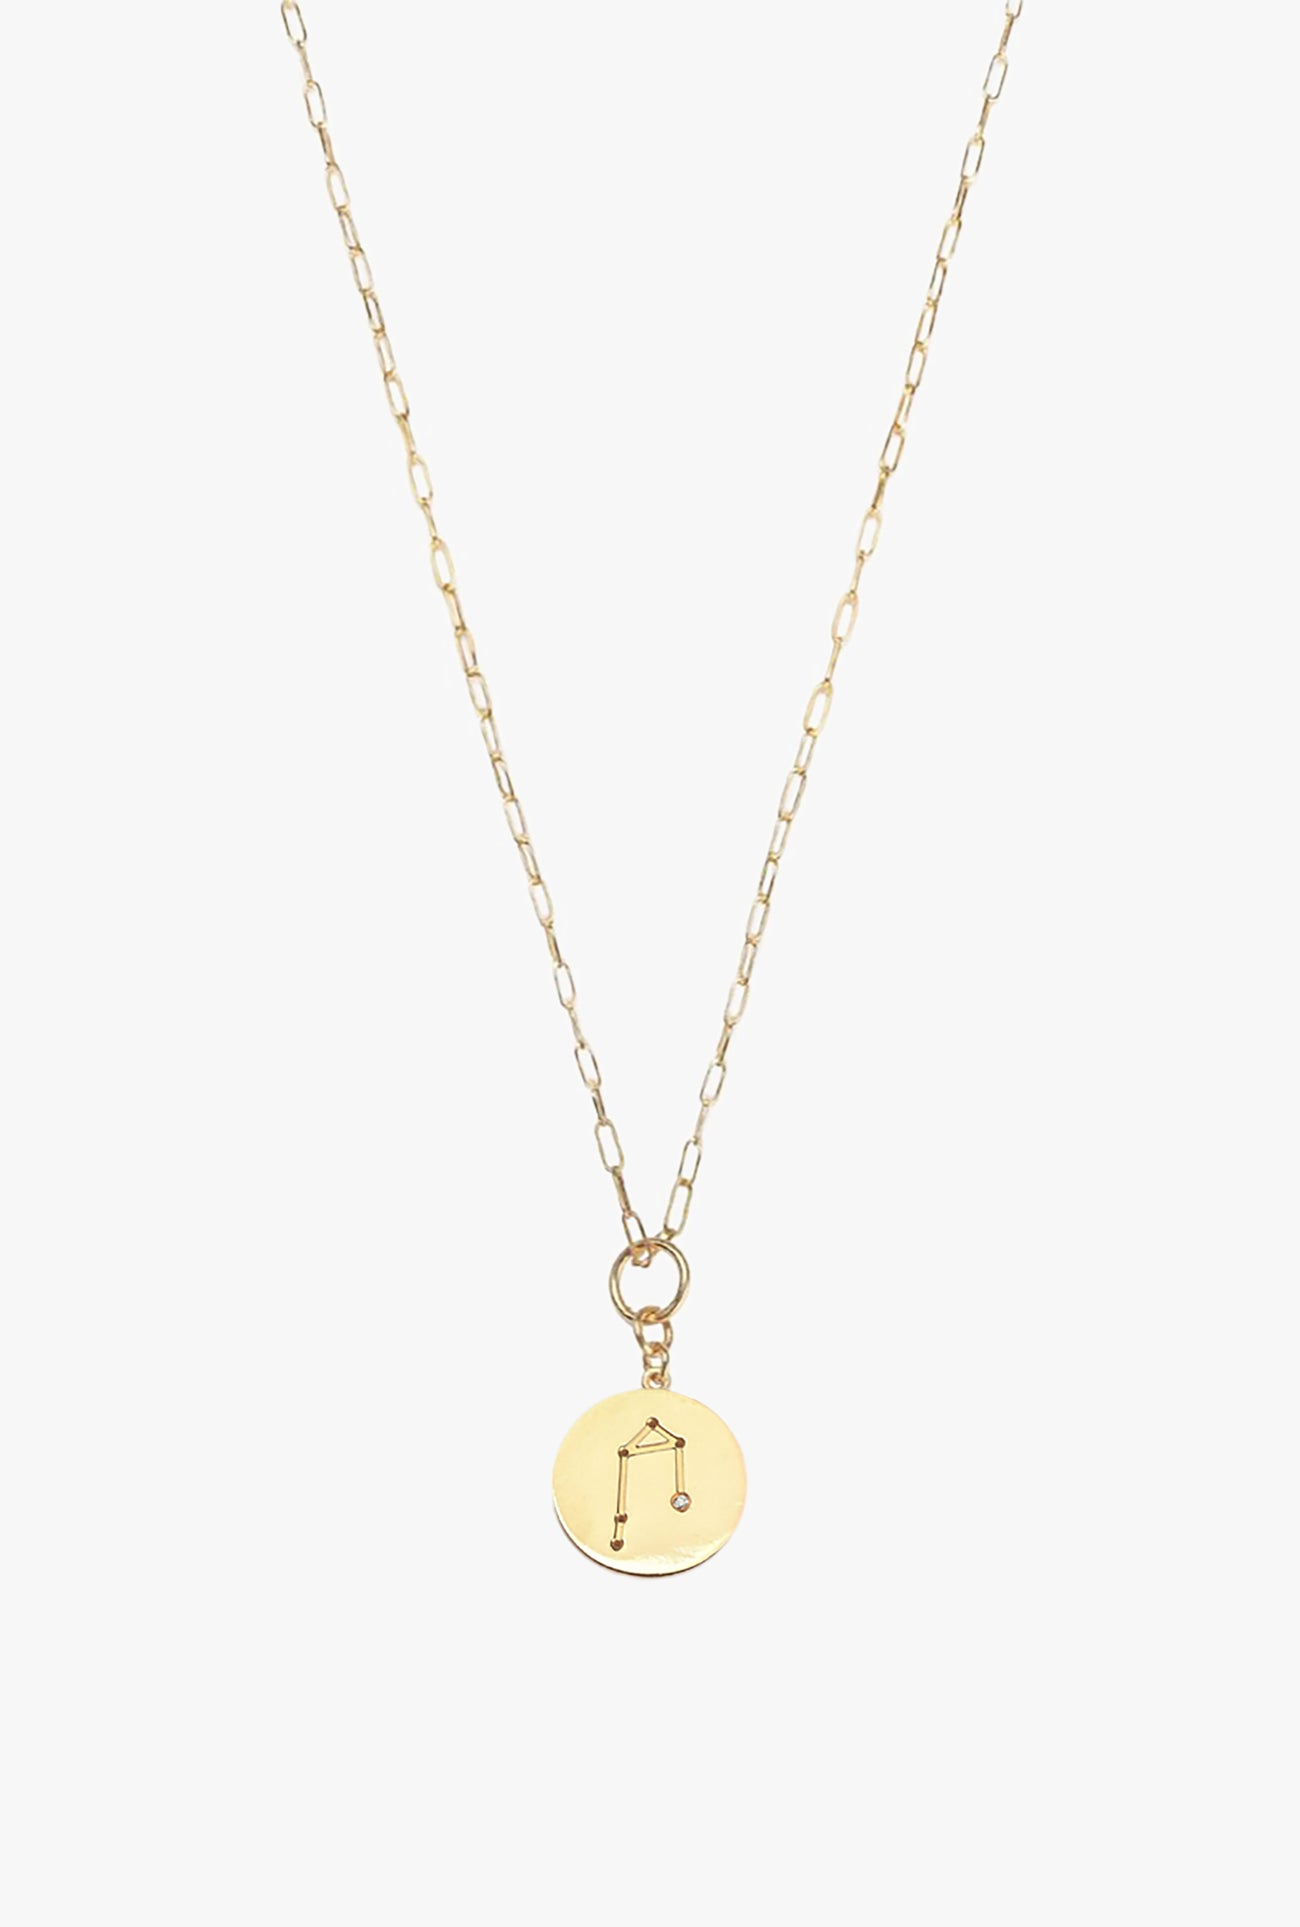 Constellation Libra Charm Necklace